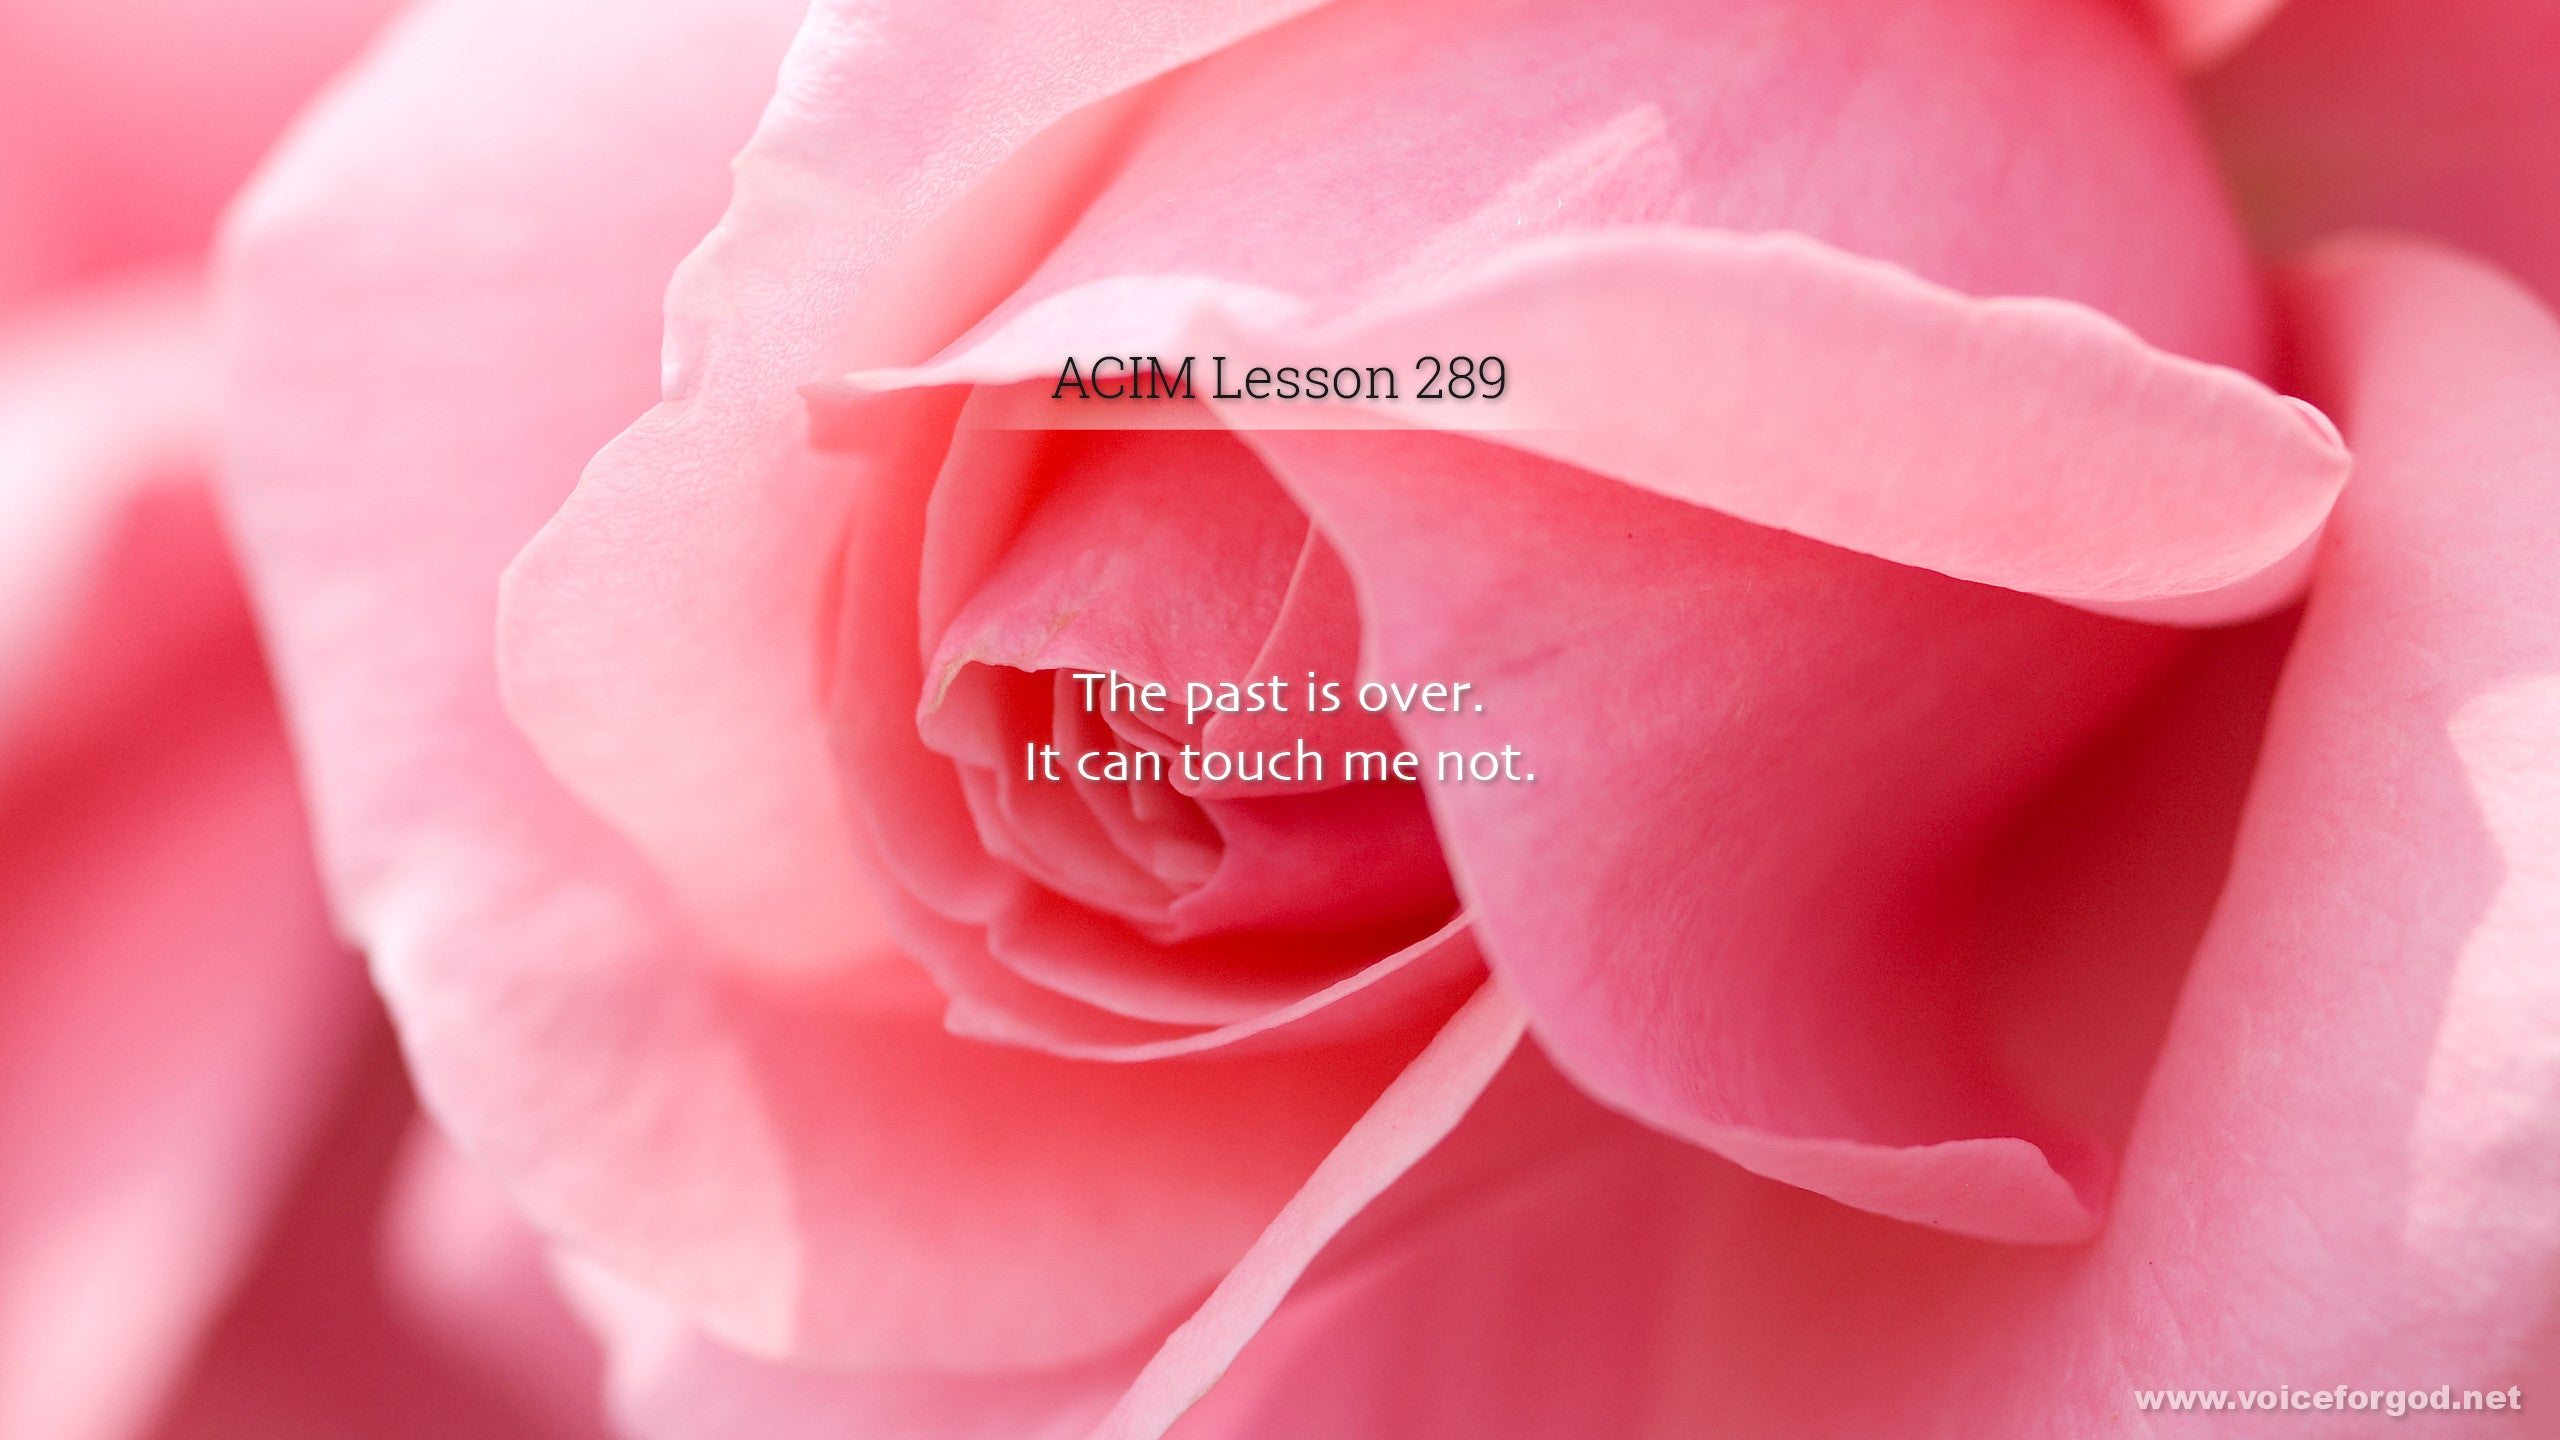 ACIM Lesson 289 - A Course in Miracles Workbook Lesson 289